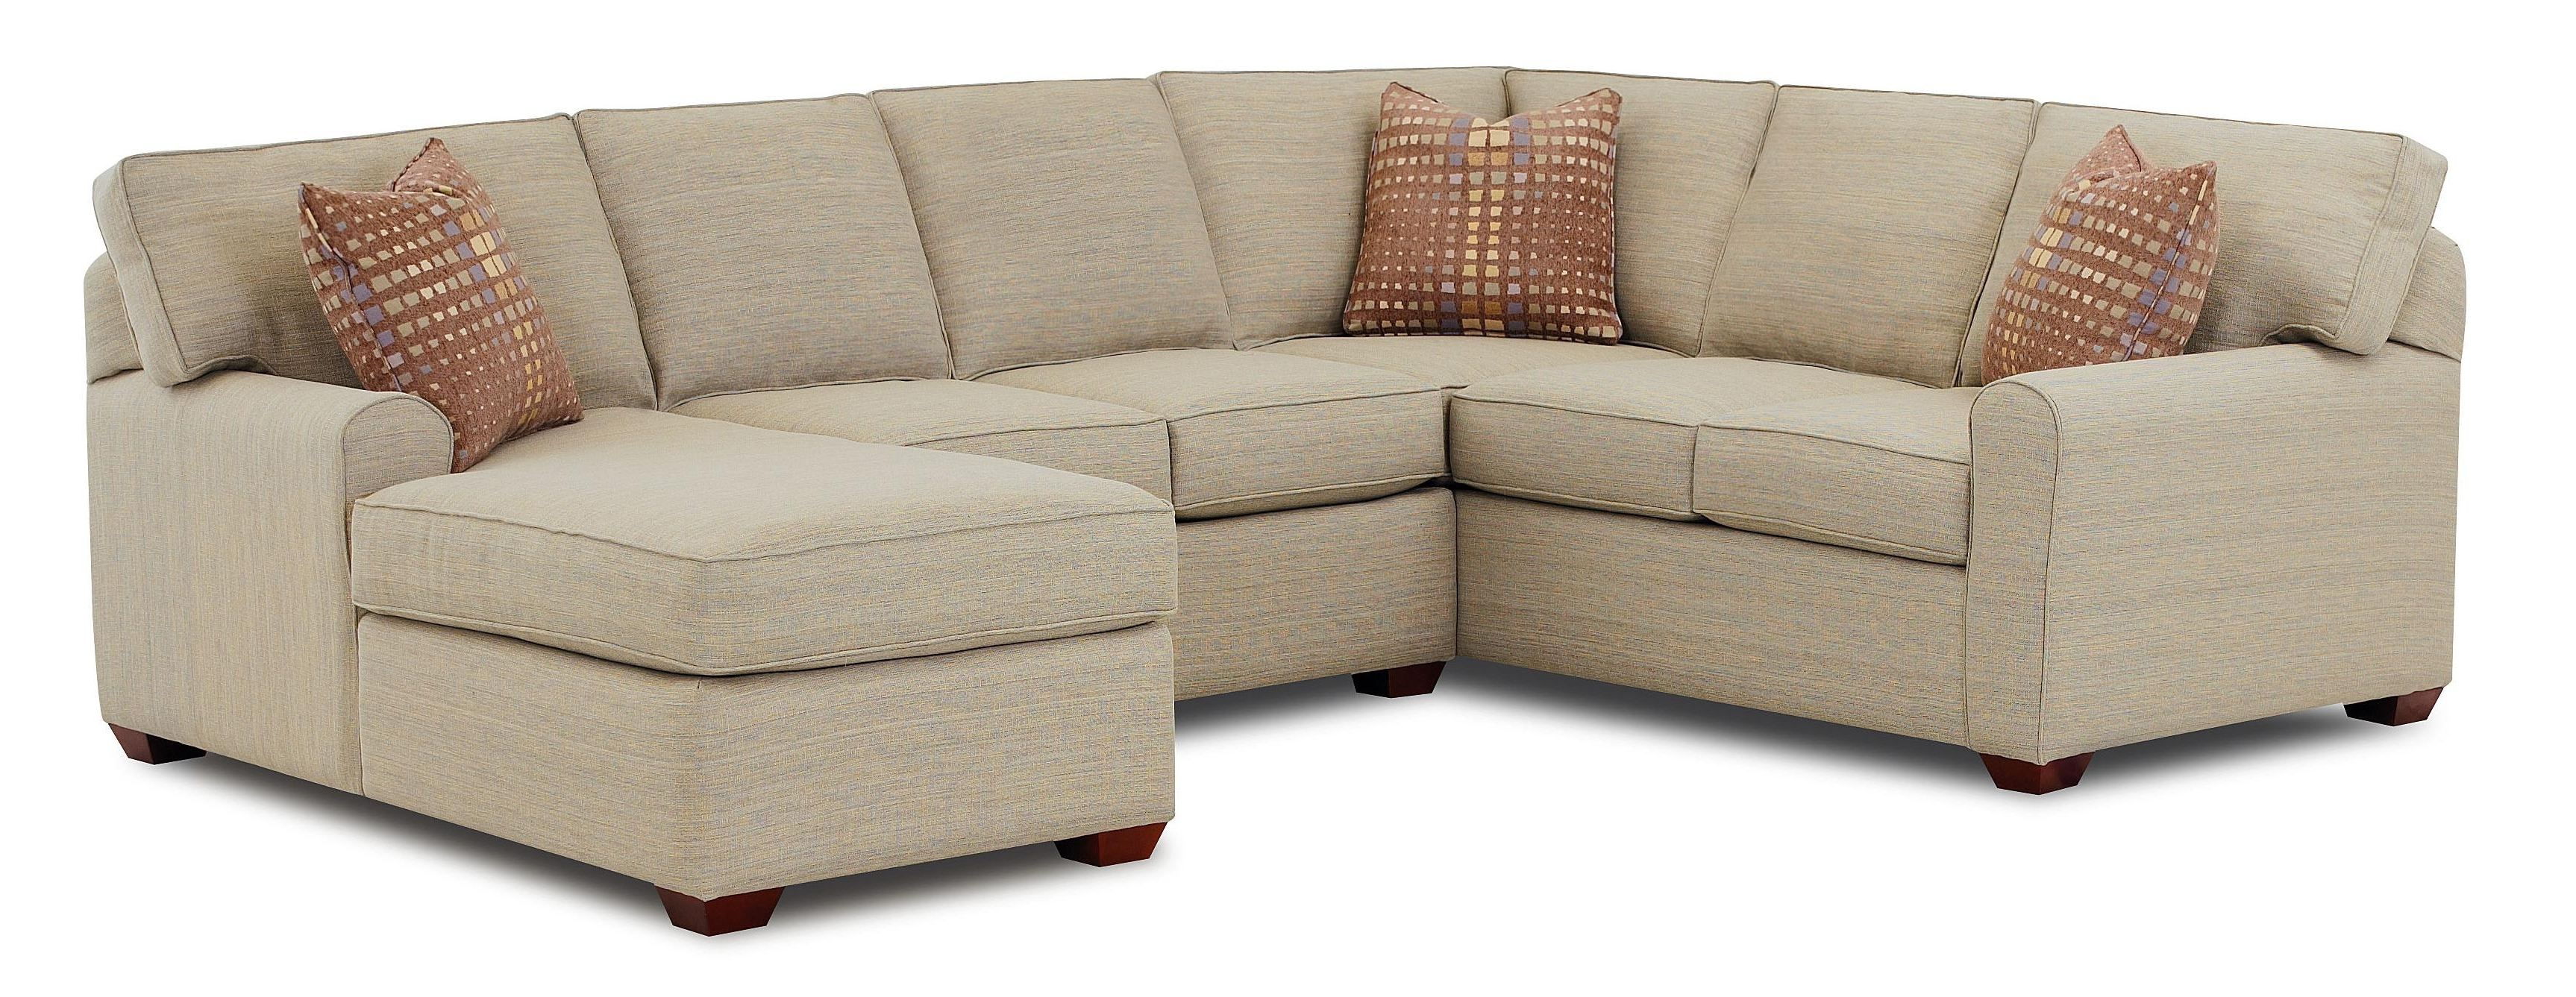 Lovely Chaise Lounge Couch 58 For Your Modern Sofa Inspiration Regarding Best And Newest Couch Chaise Lounges (View 4 of 15)